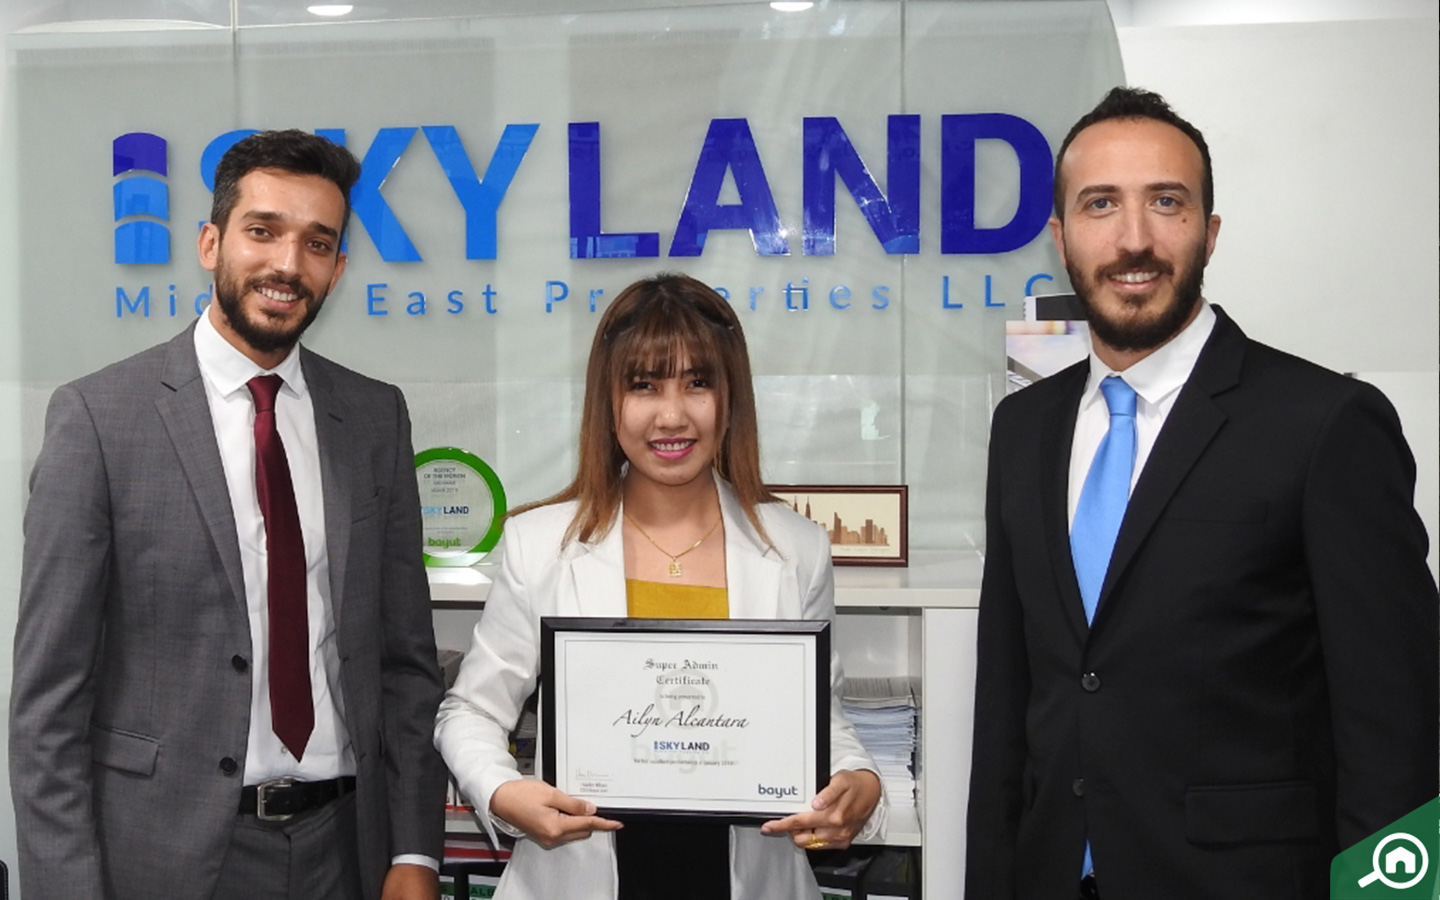 Ailyn Alcantara from Sky Land Properties